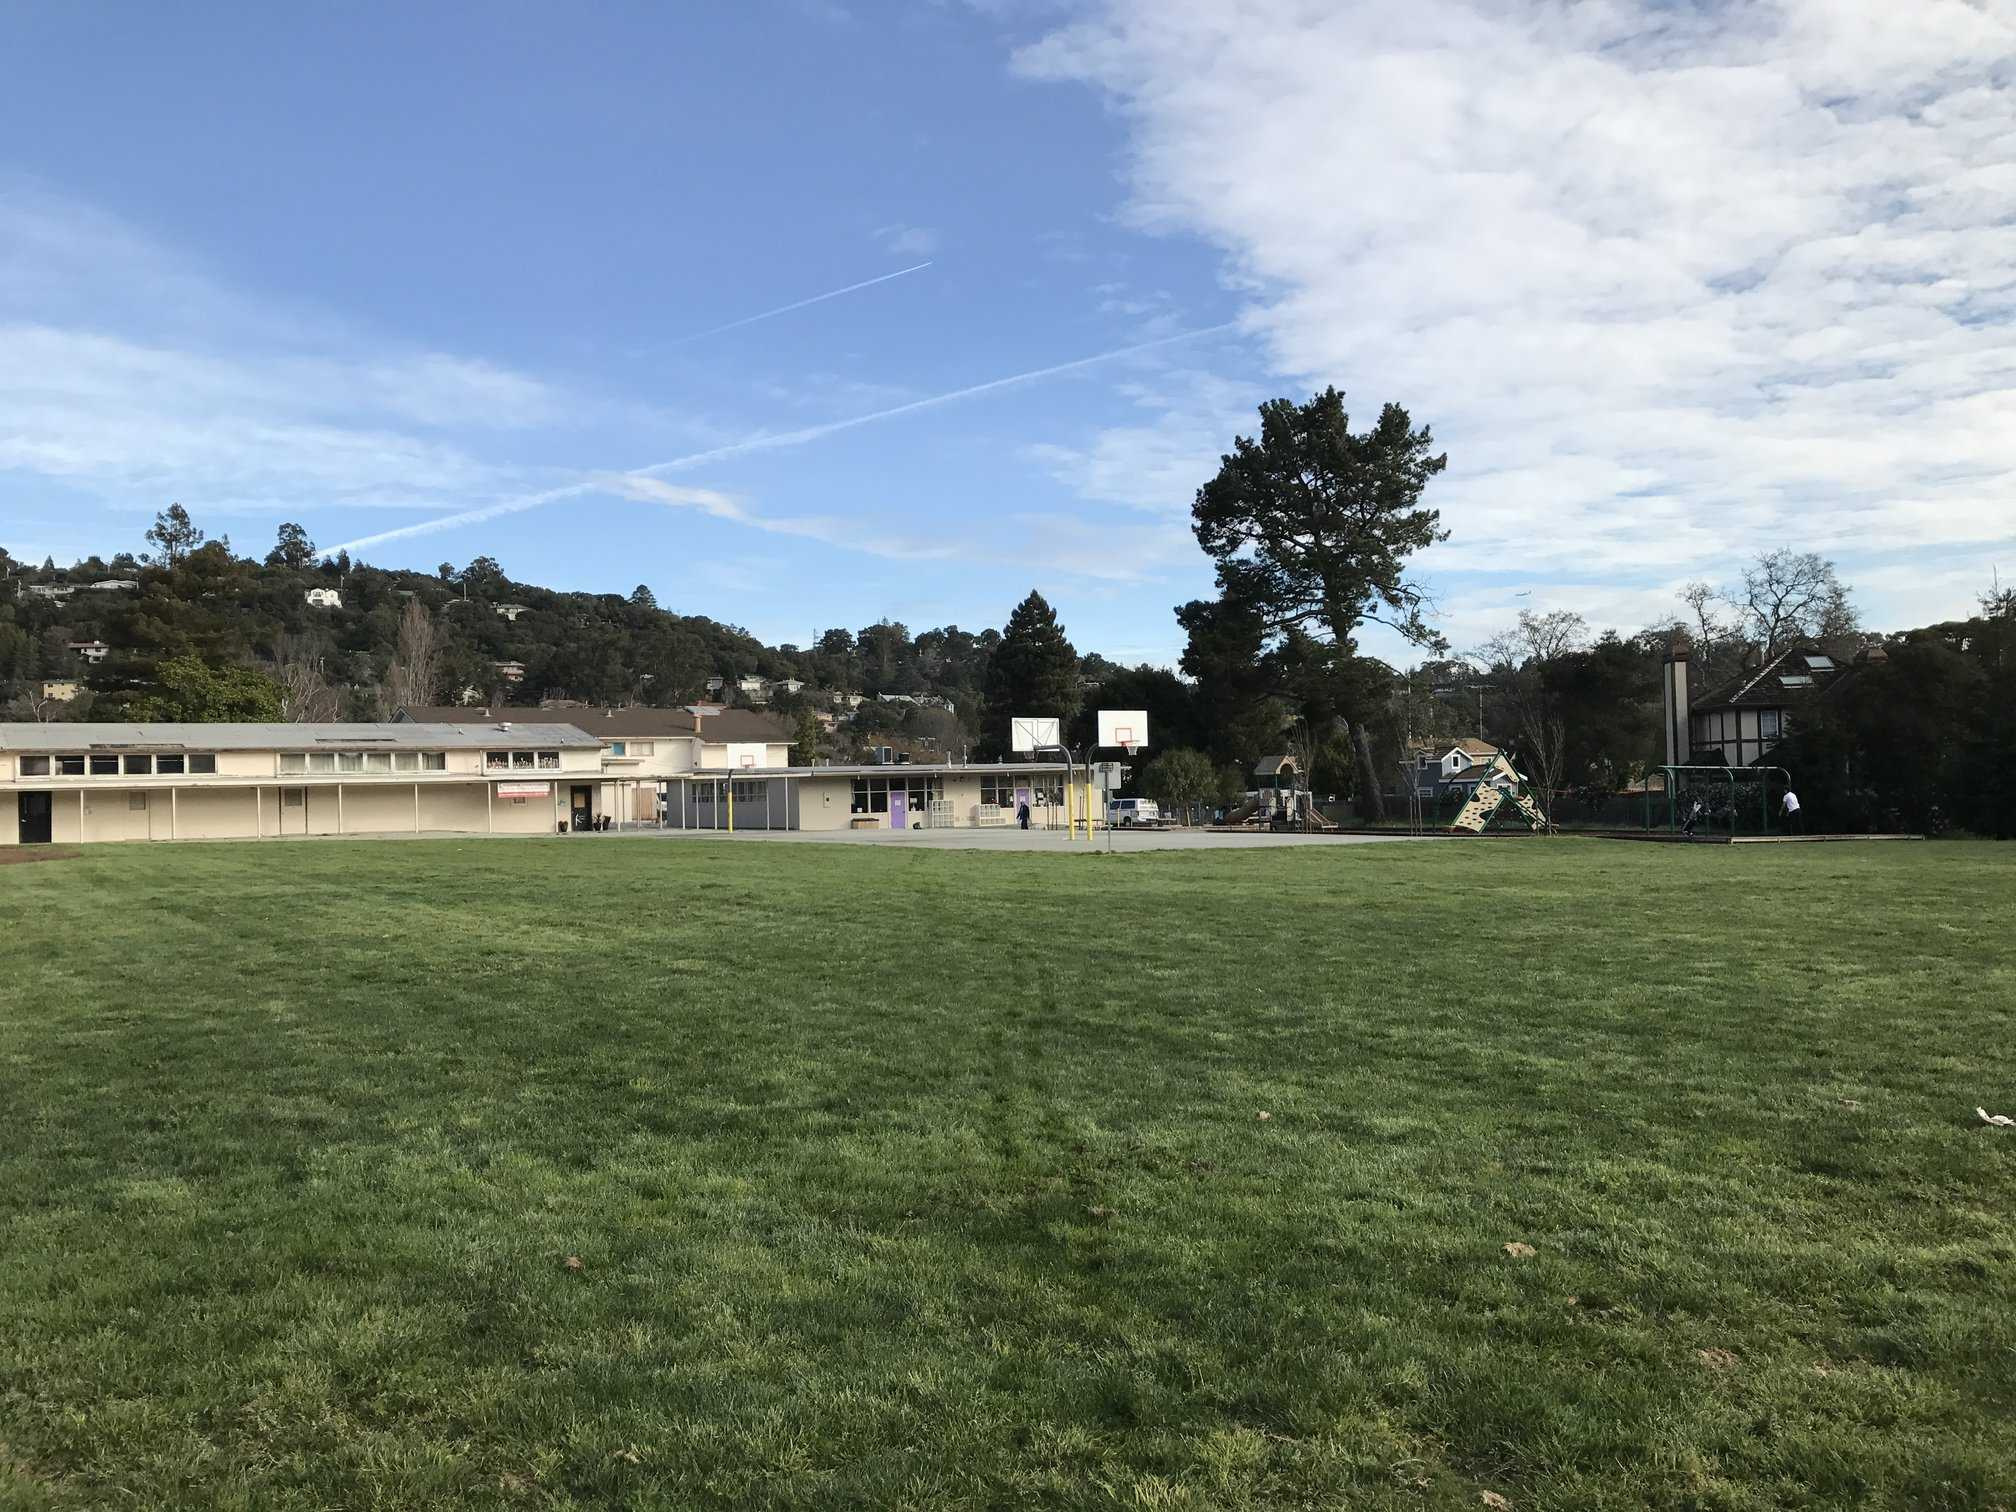 The City of Belmont and the Belmont-Redwood Shores School District are considering converting Barrett Community Center into a small elementary school to help resolve the overcrowding issues at the current schools in the district.